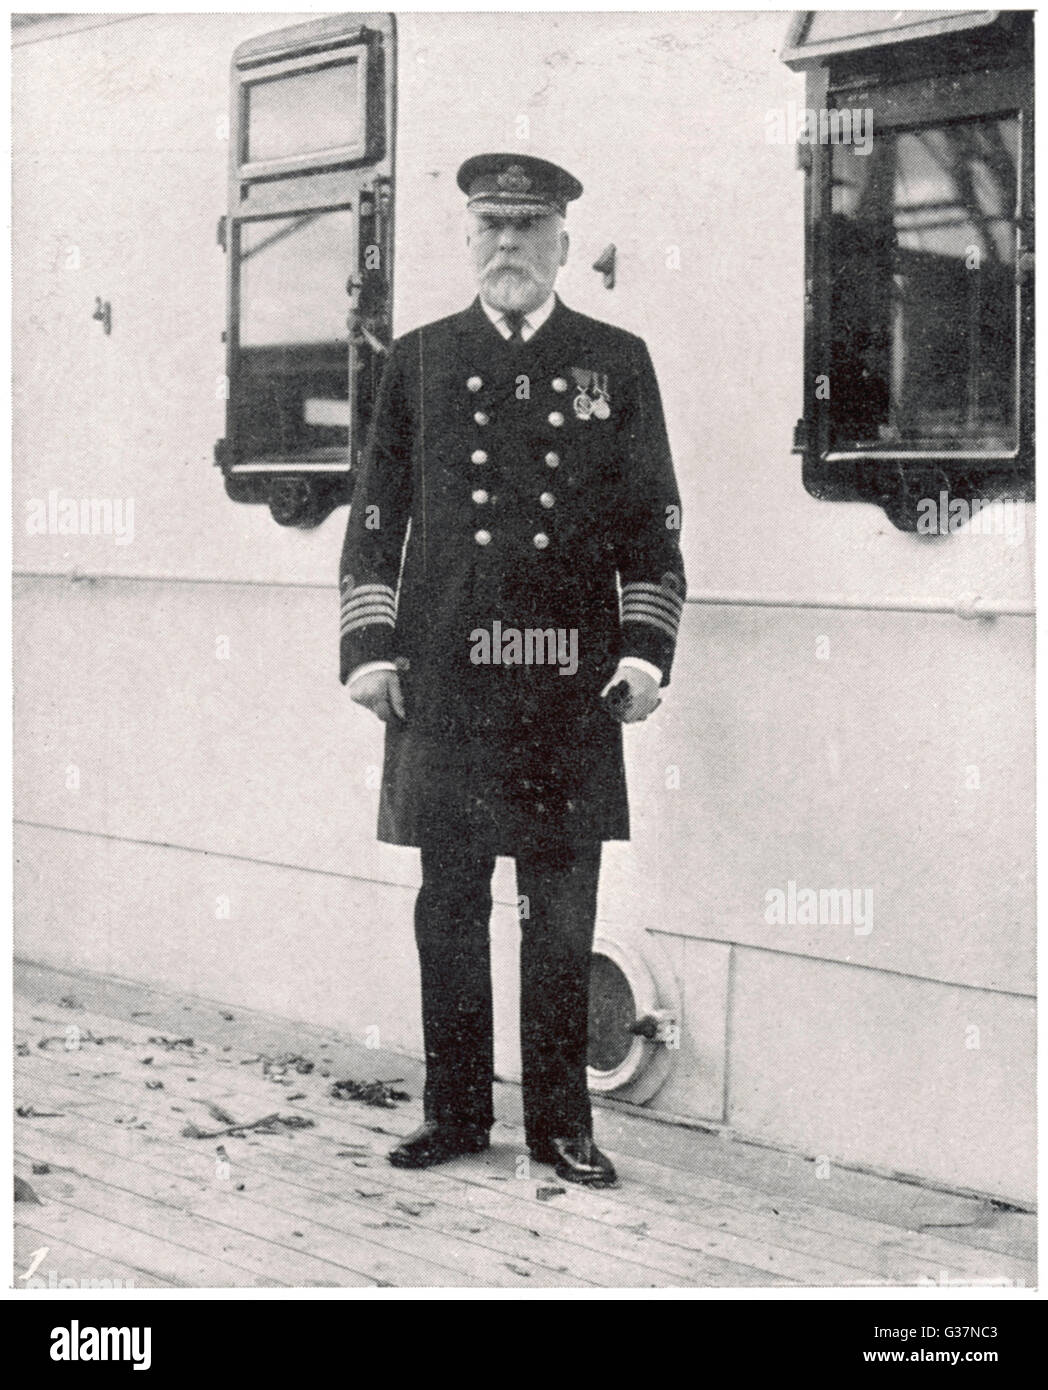 The captain of the RMS Titanic  - Captain E J Smith.         Date: 1912 - Stock Image